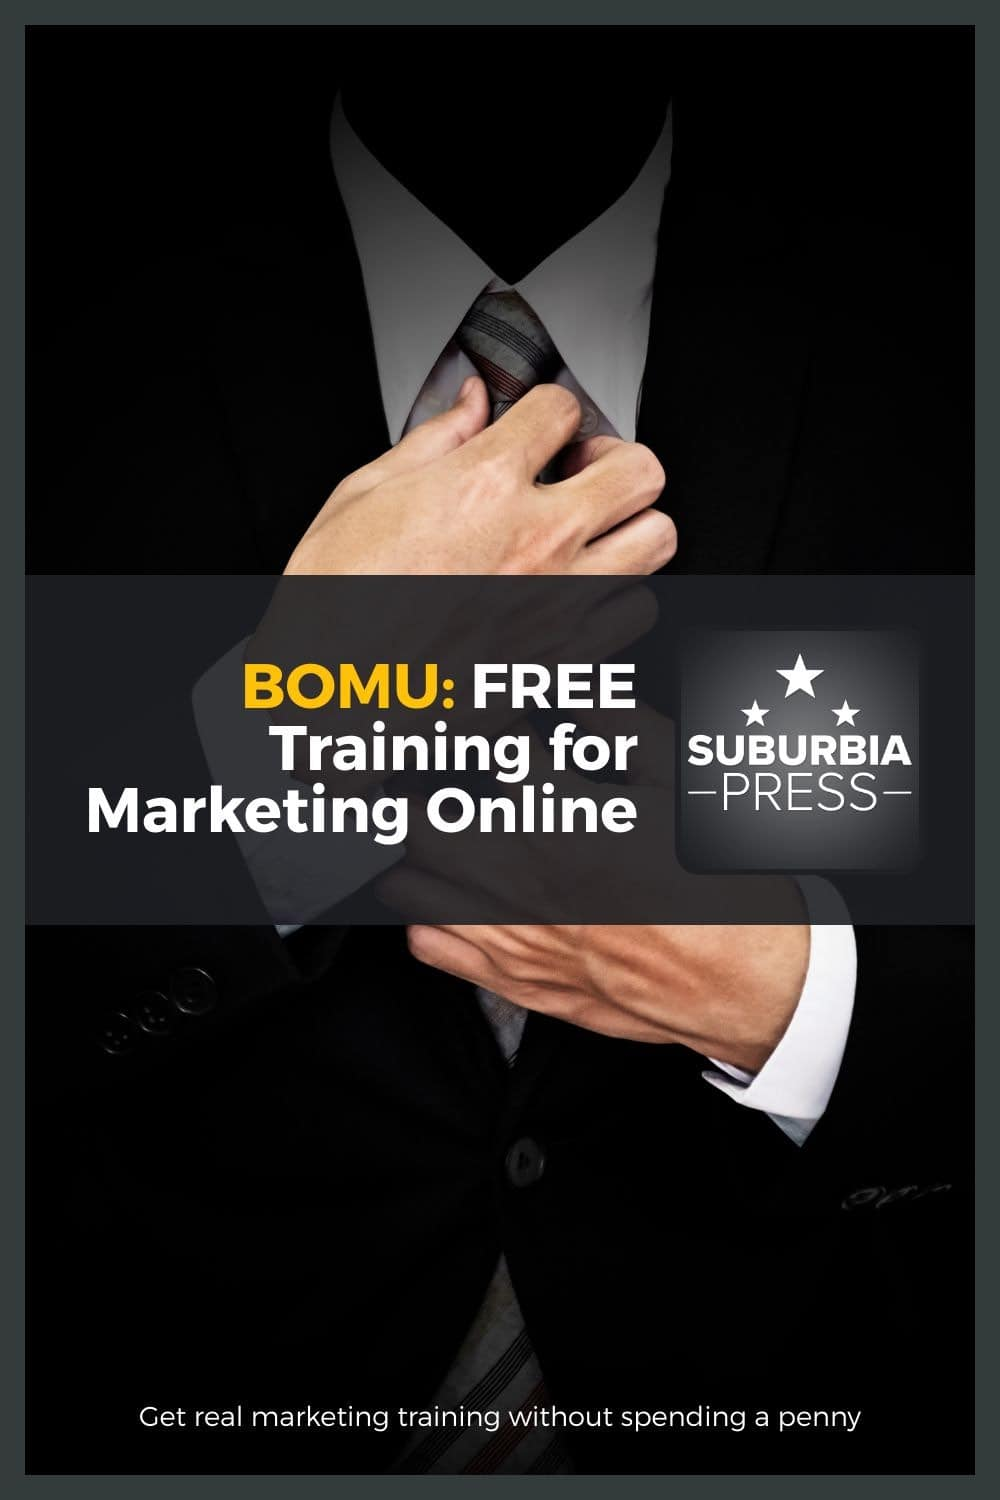 BOMU: How to Get FREE Training for Marketing